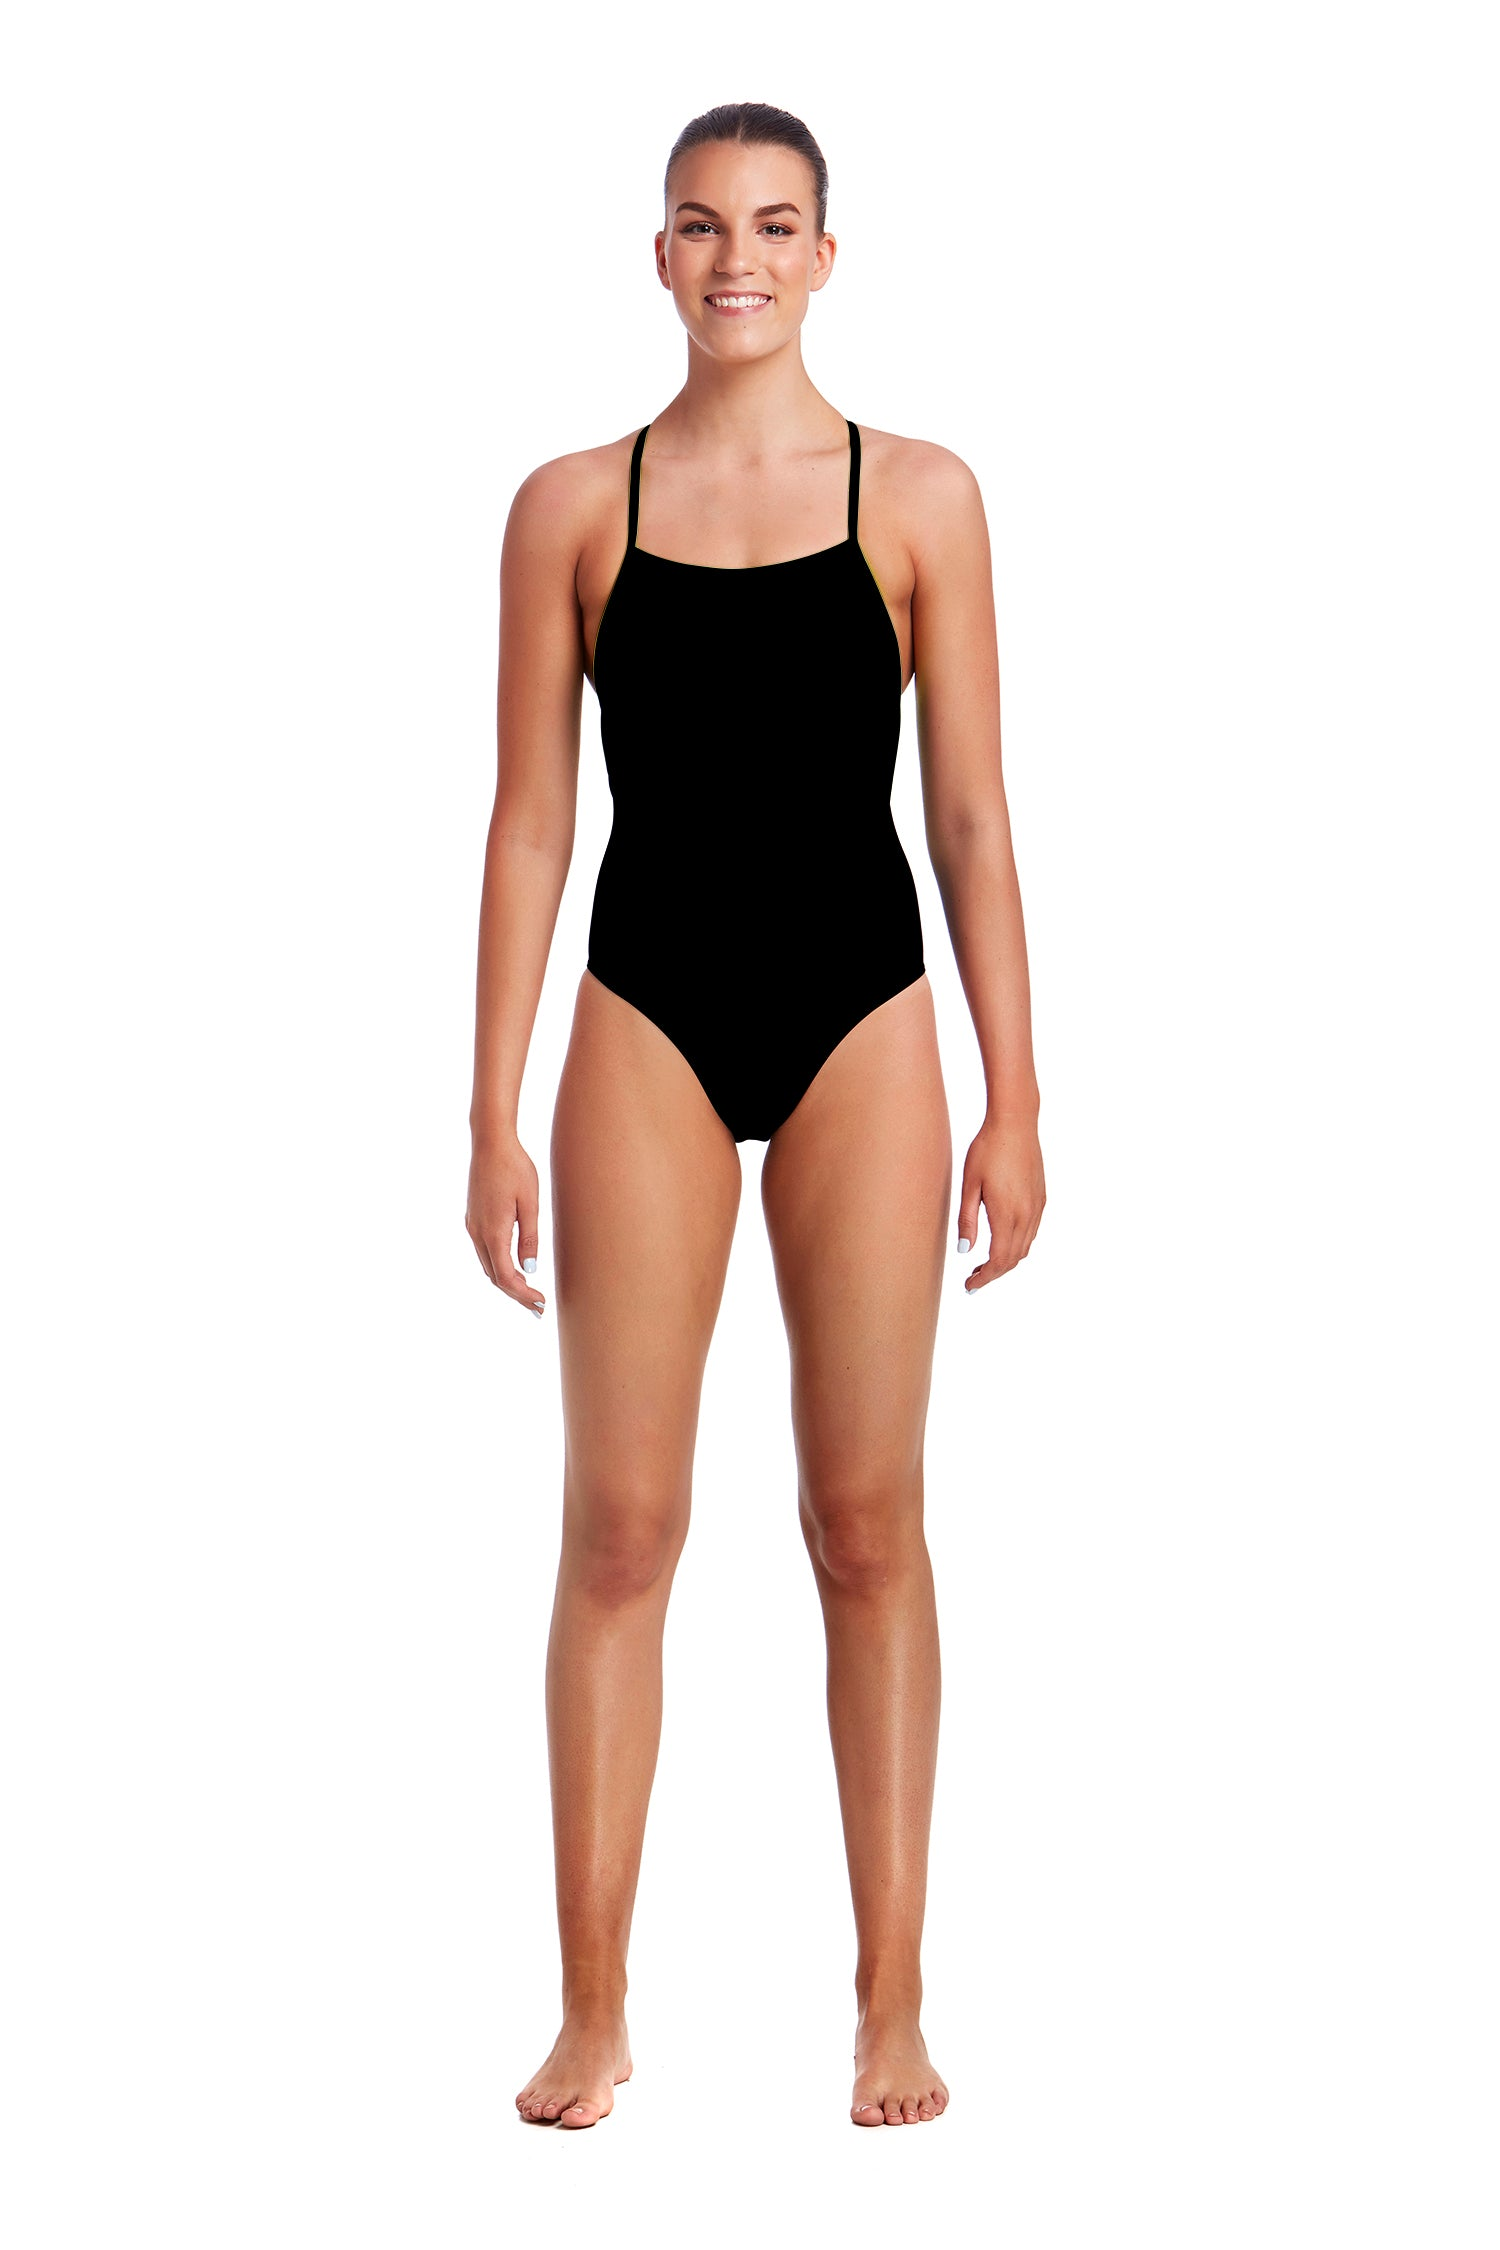 Strapped In One Piece Still Black